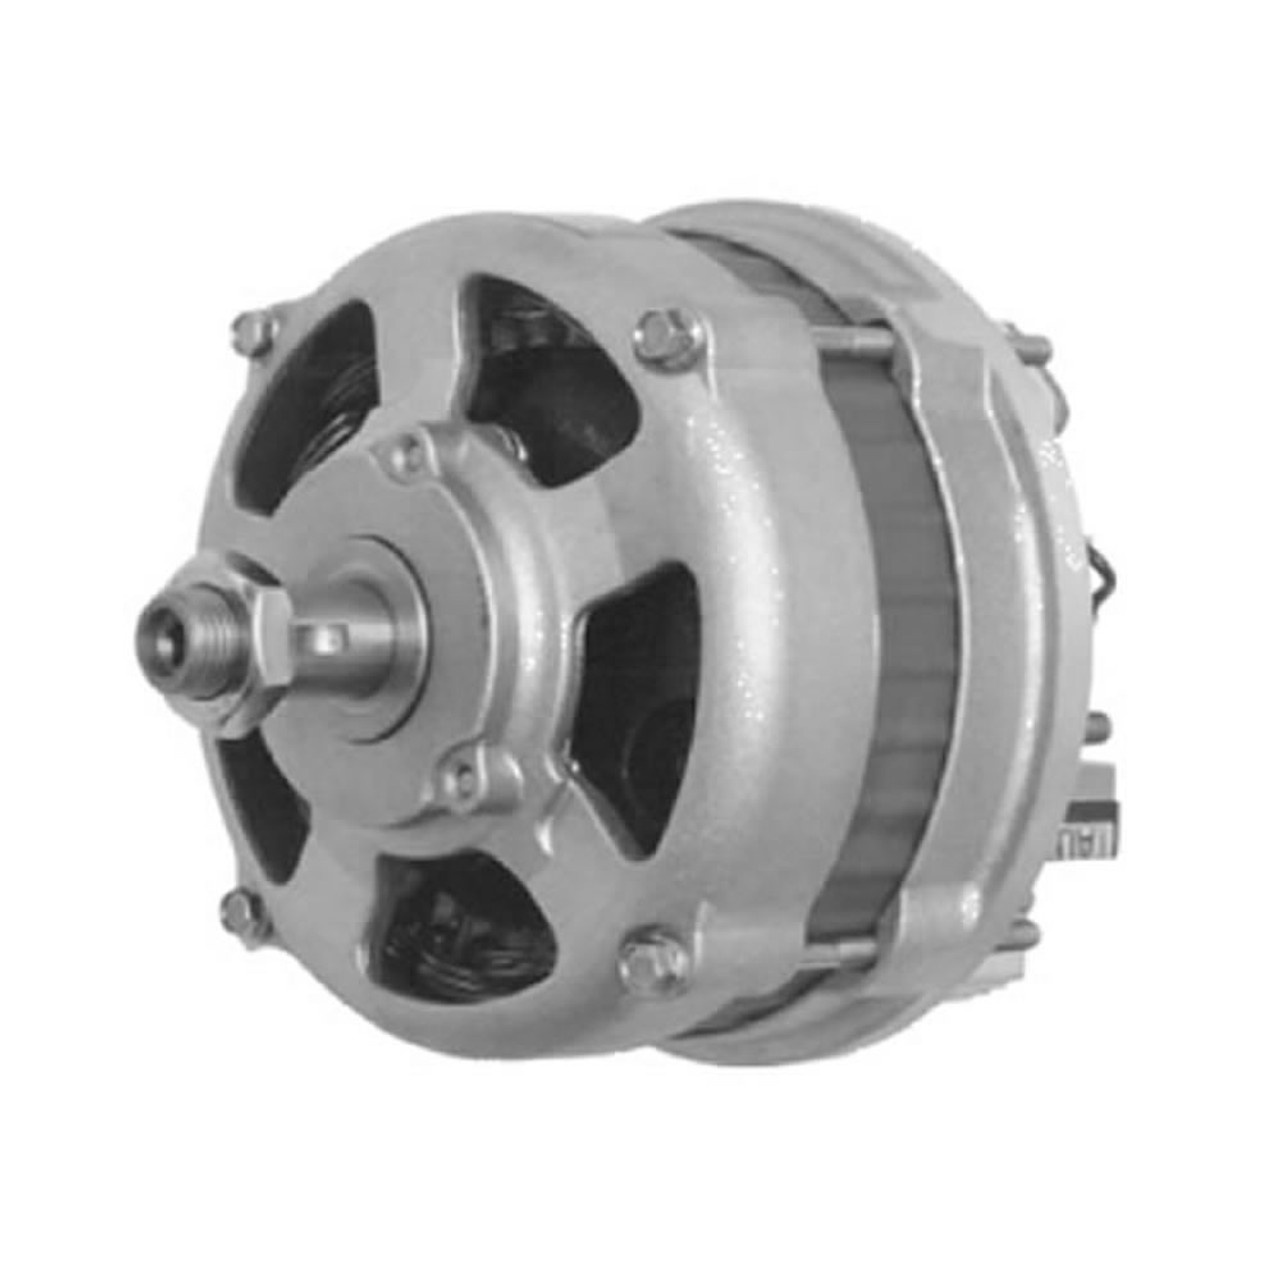 small resolution of atlas crawler excavator 160lc letrika alternator mg111